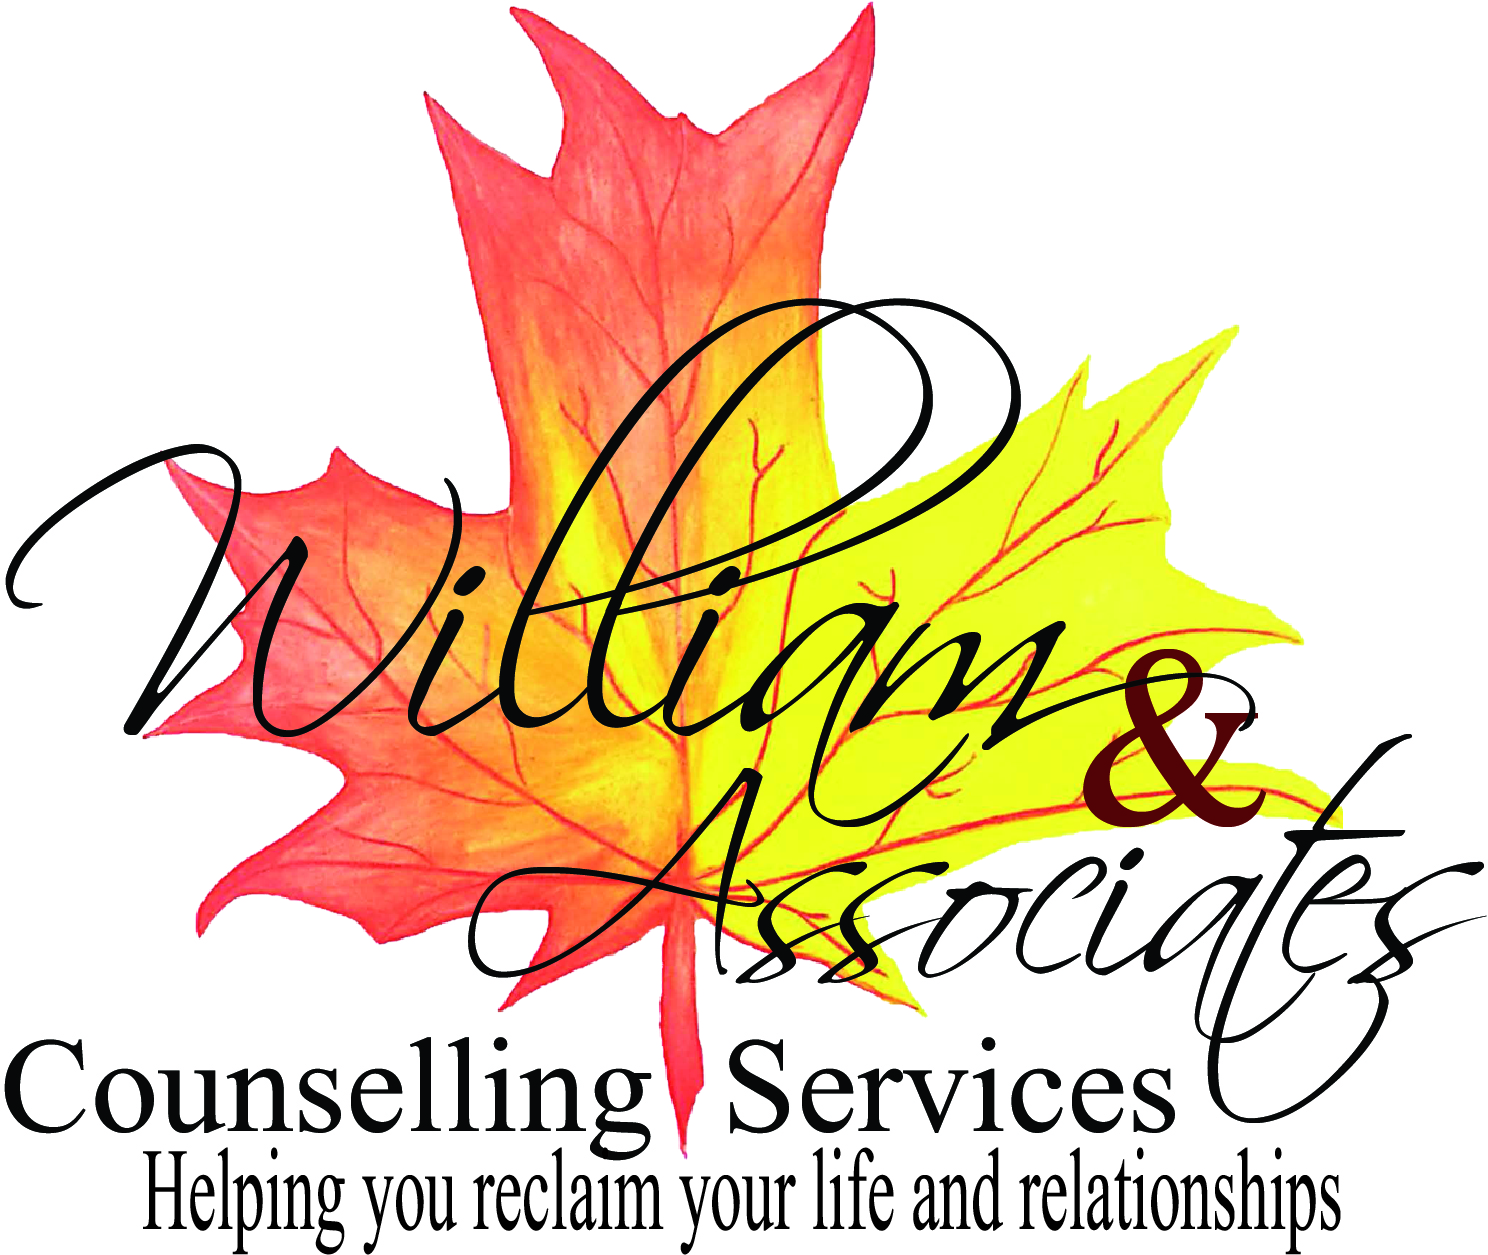 William & Associates Counselling Services logo